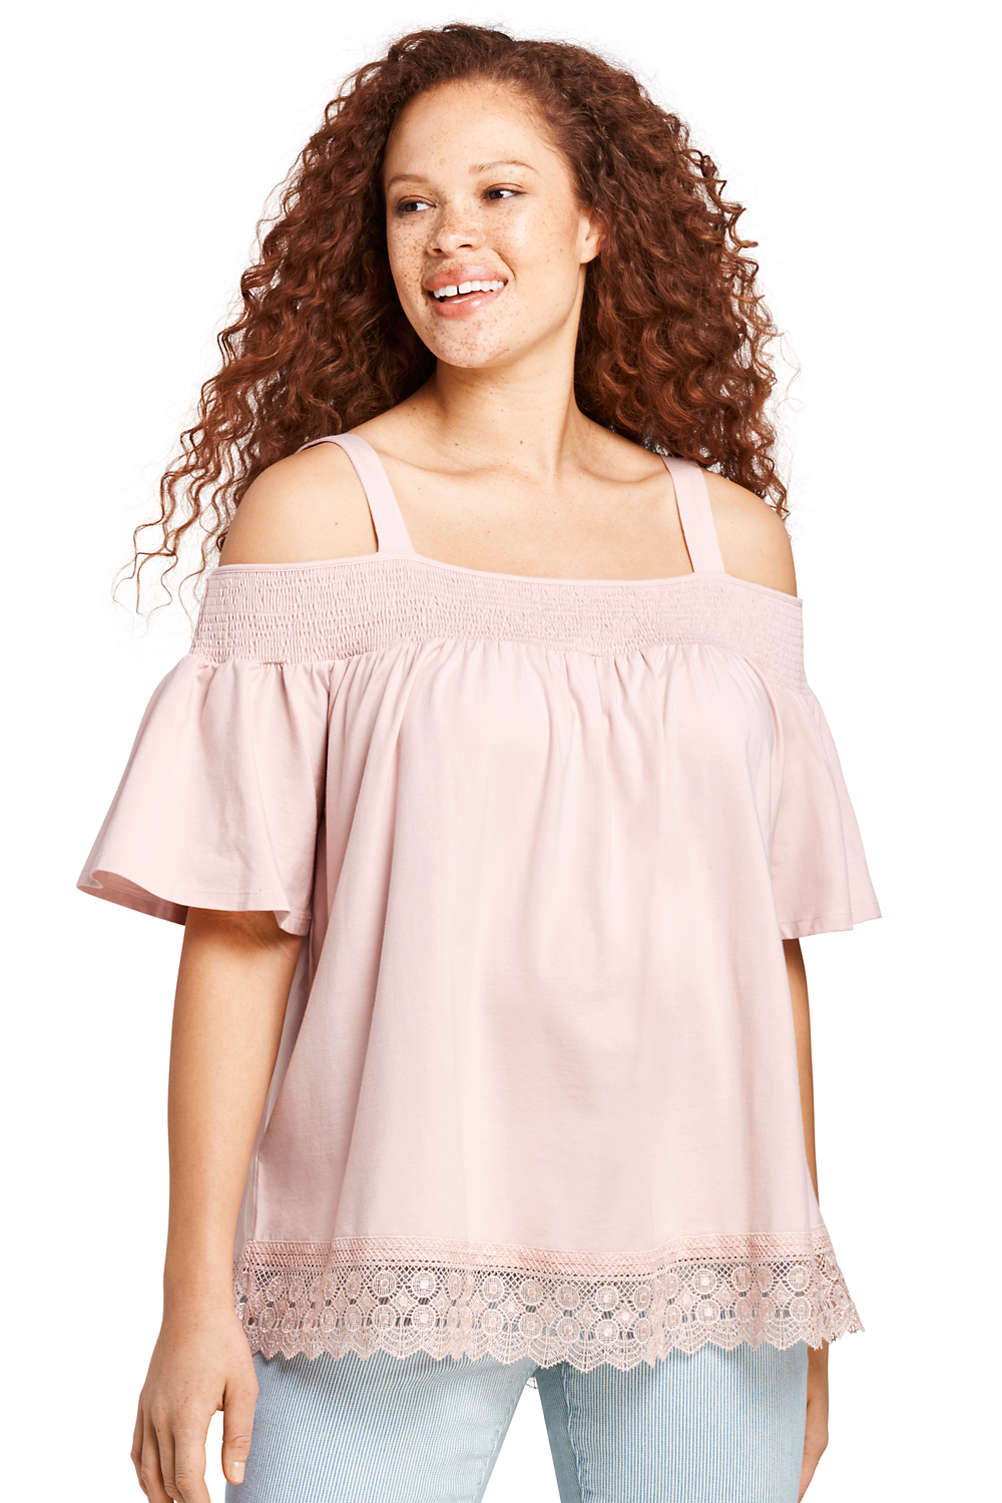 55a80366a5a Women's Plus Size Smocked Off Shoulder Top from Lands' End